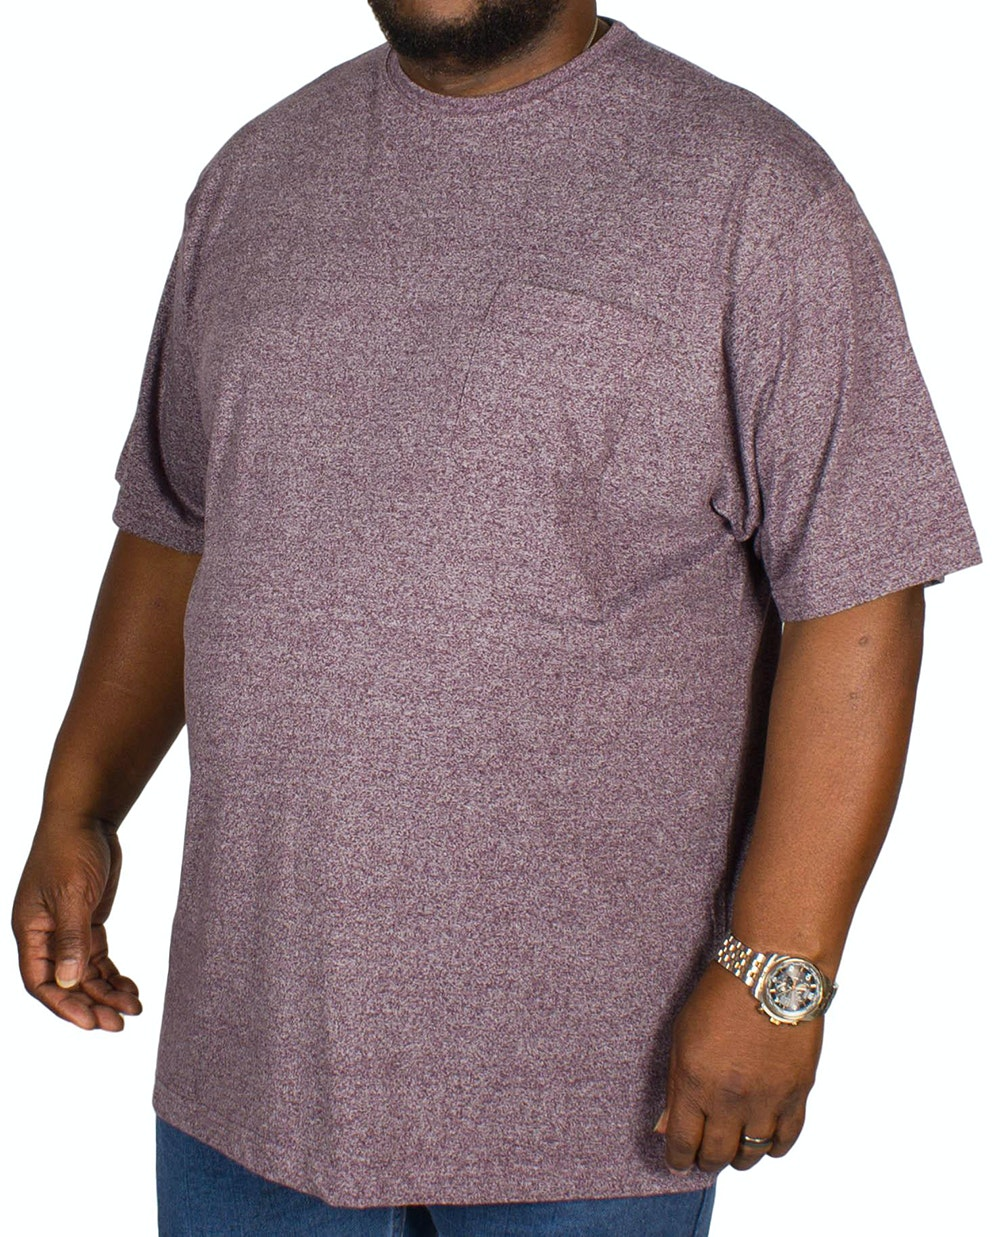 Espionage Jersey Marl T-shirt Grape